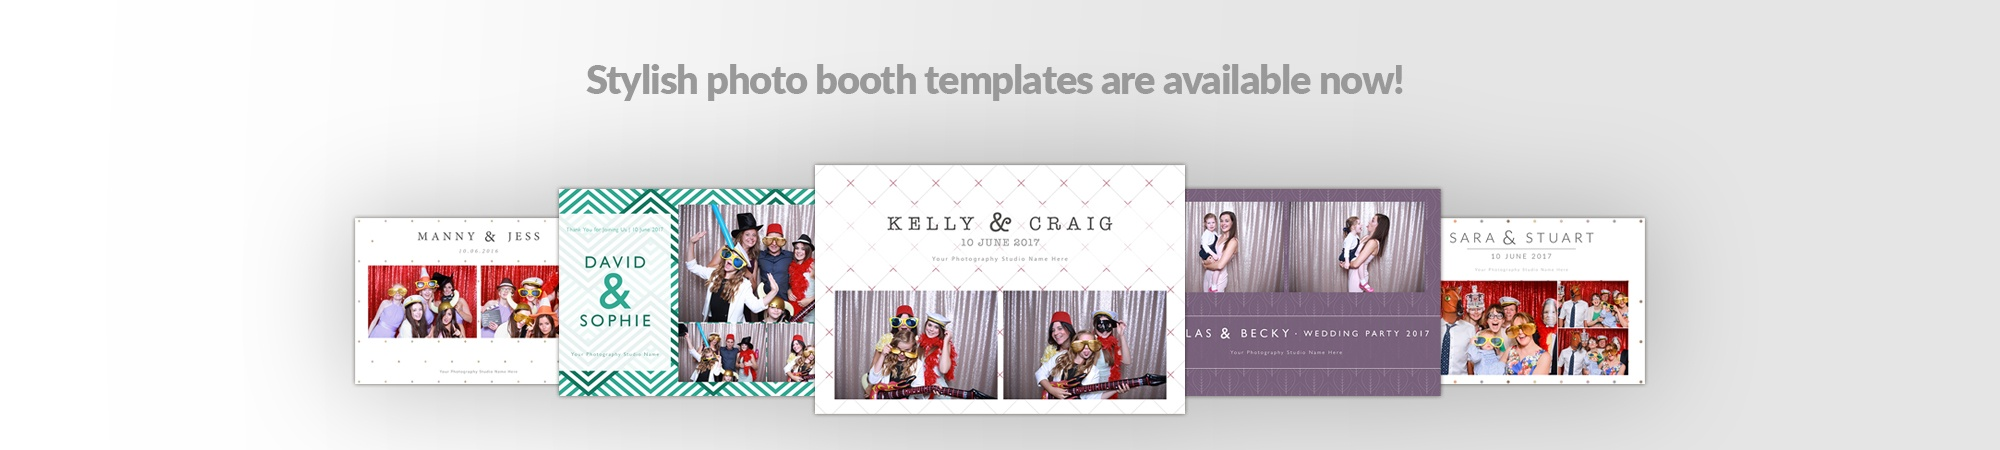 Photo booth for sale click this banner to go to our templates page